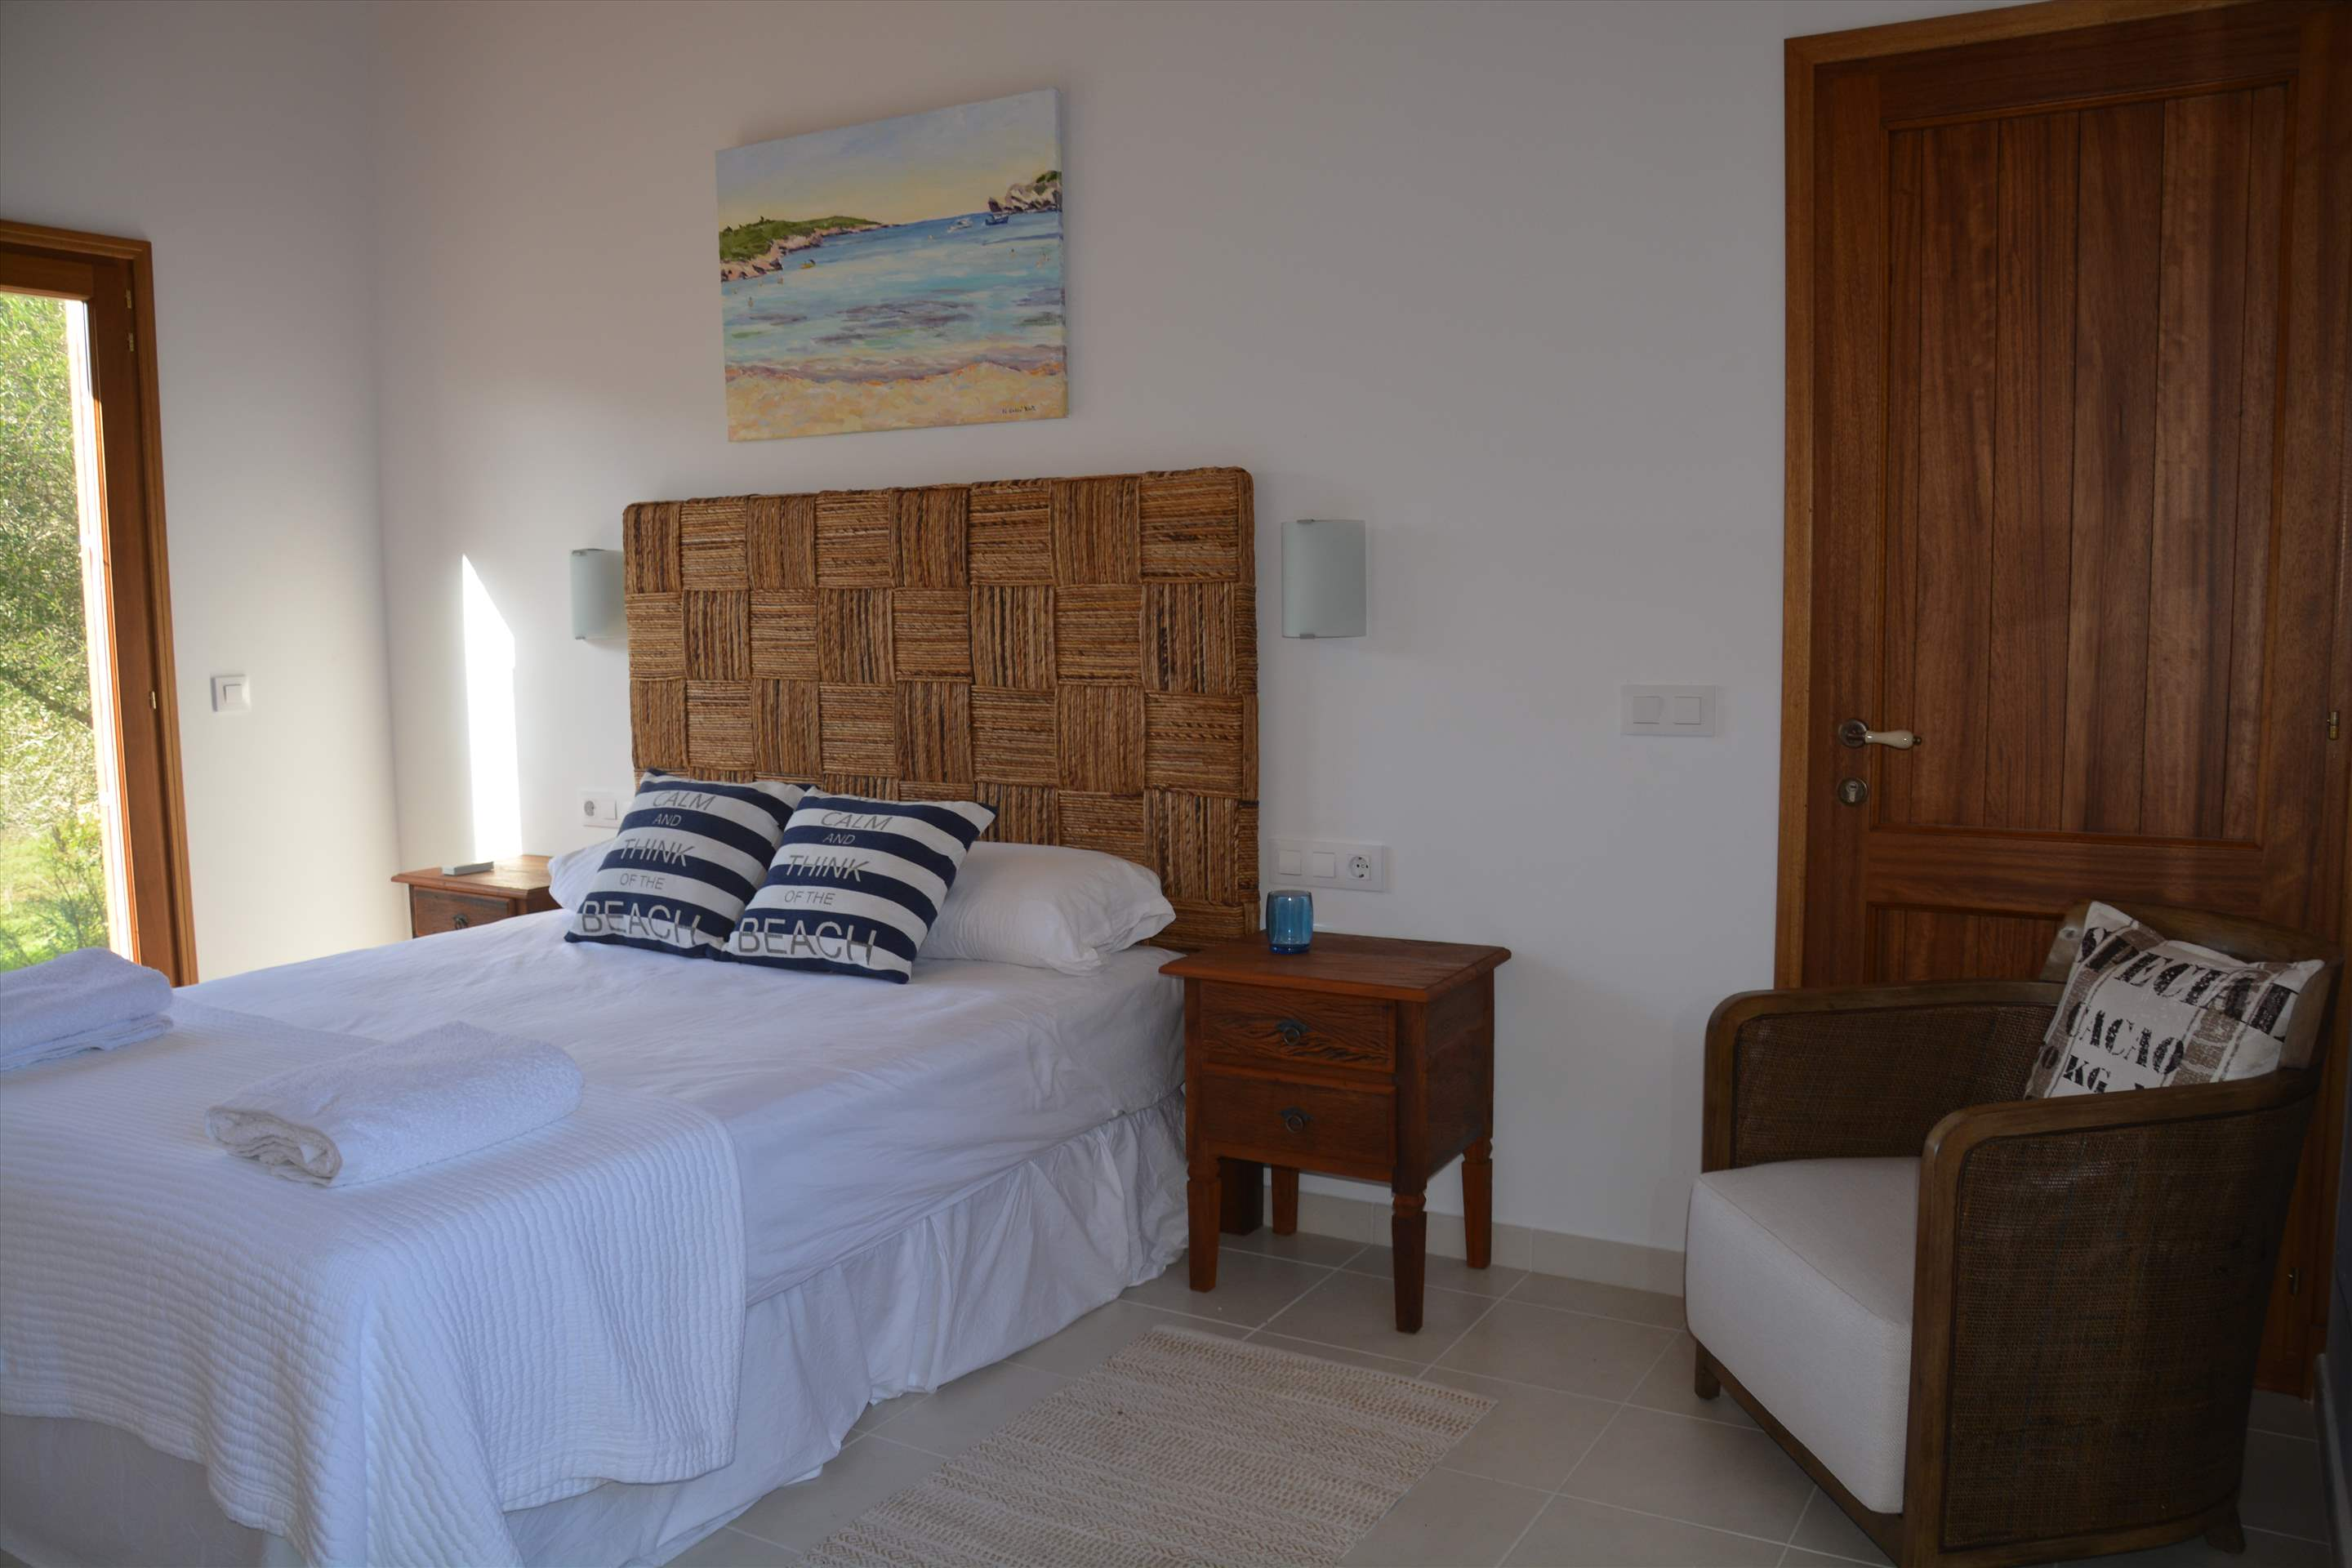 Les Arcs, 5 bedroom villa in Mahon, San Luis & South East, Menorca Photo #31